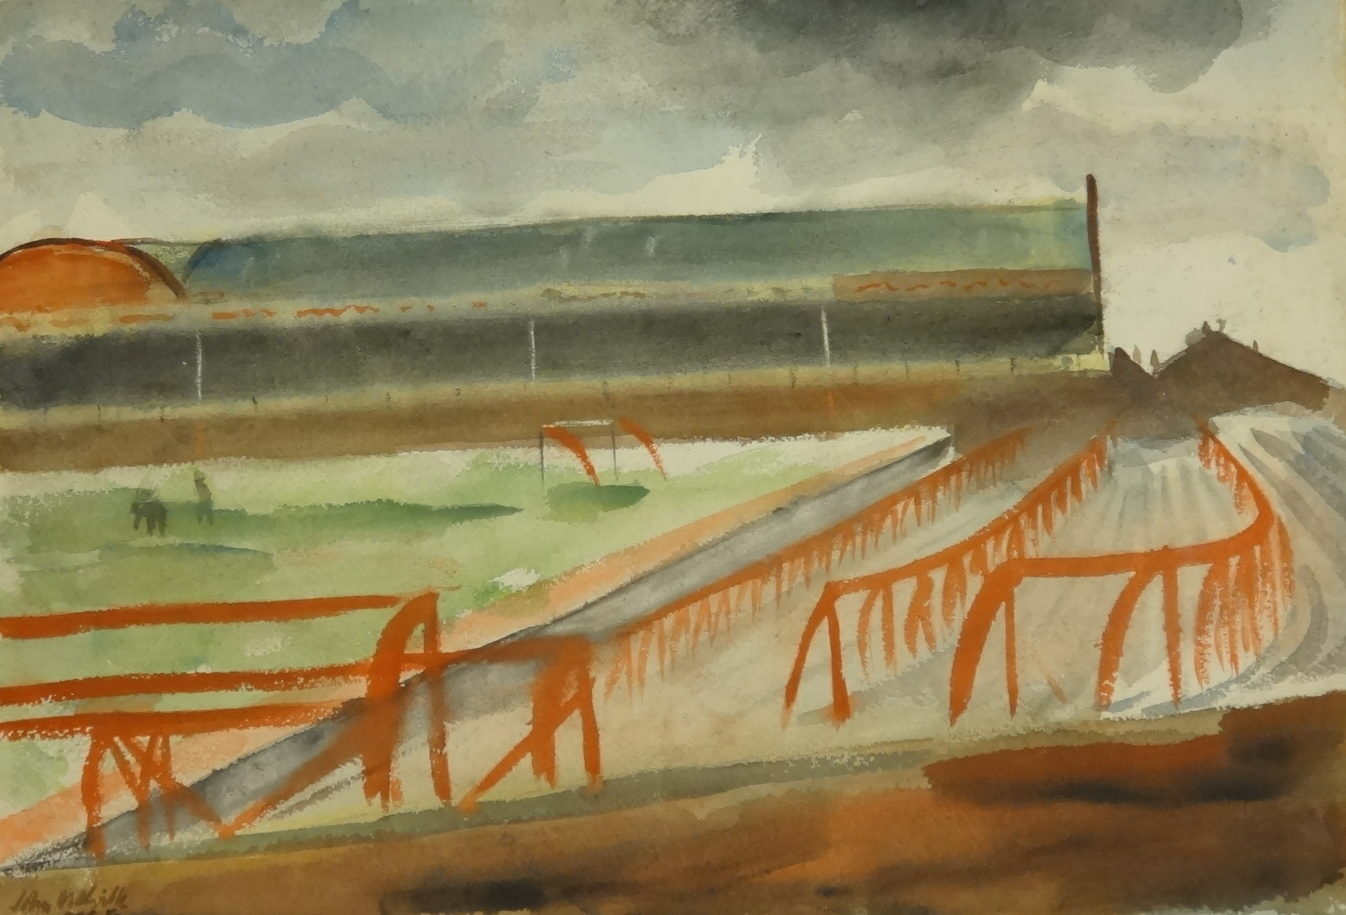 Lot 006 - John Melville (1902-1986), watercolour 'Villa Park Football Ground', signed and dated, unframed,